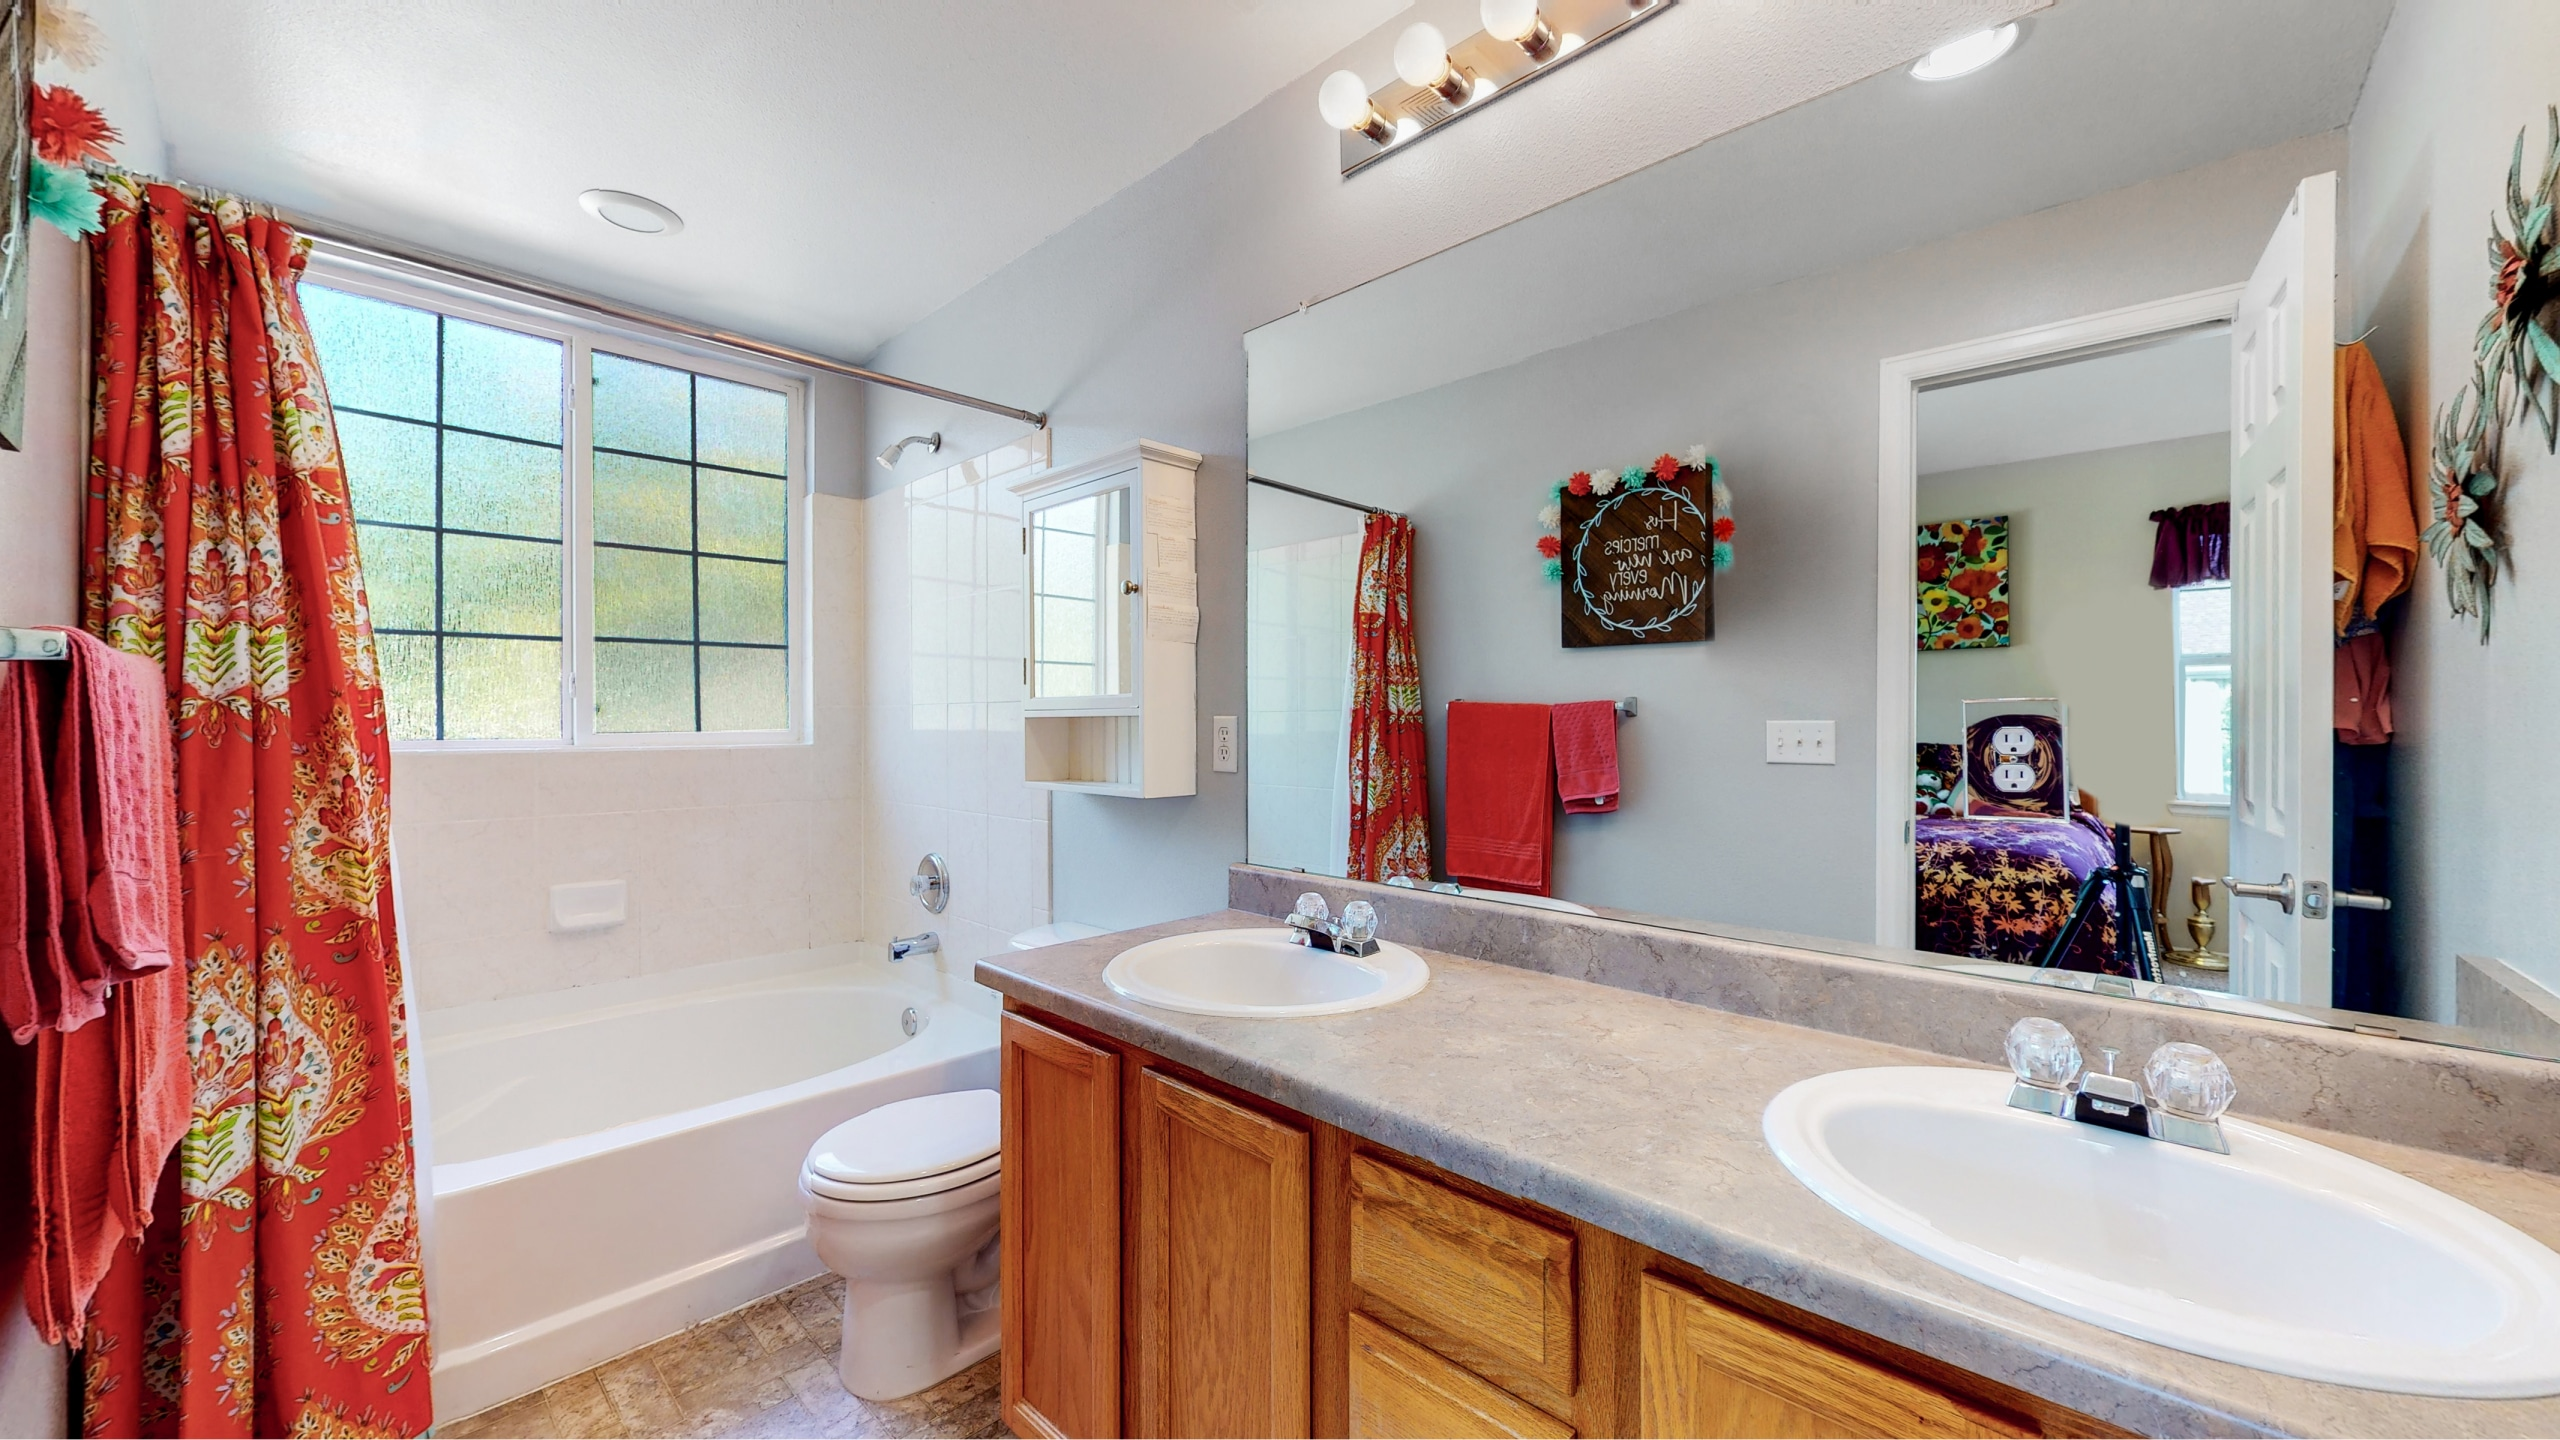 Master Bathroom with oversized tub and double sink vanity